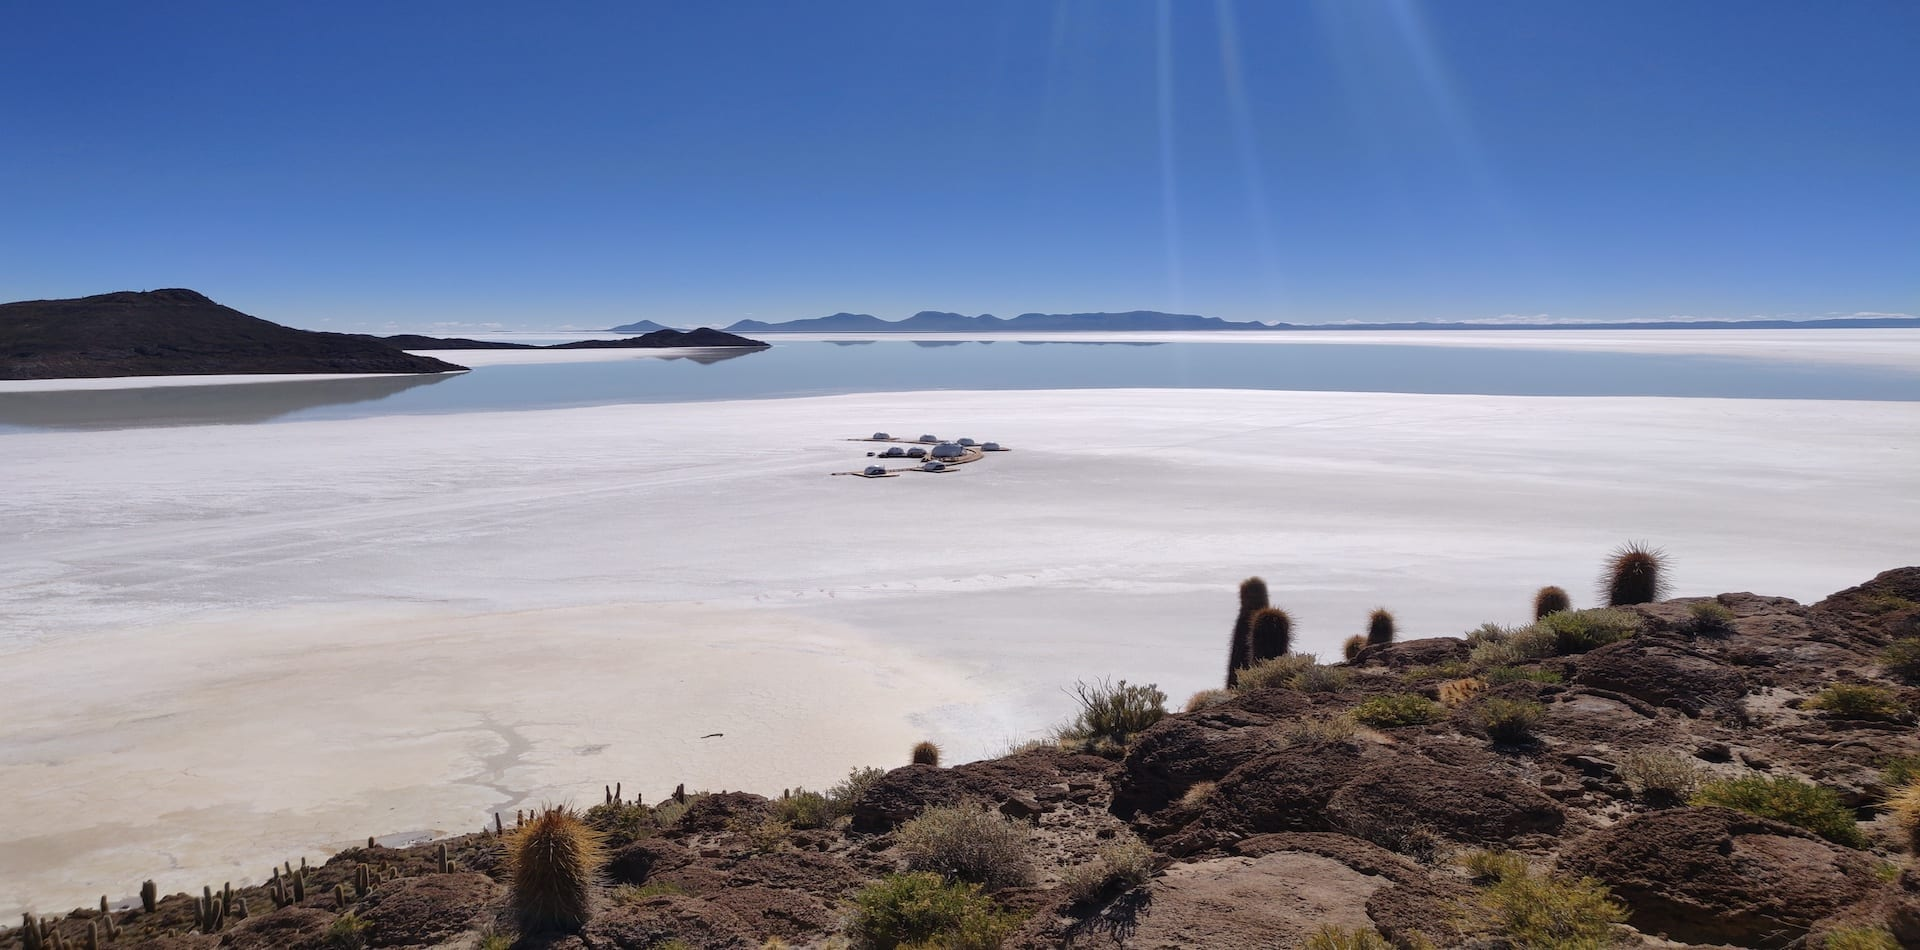 luxury pods in the distance on the salt flats